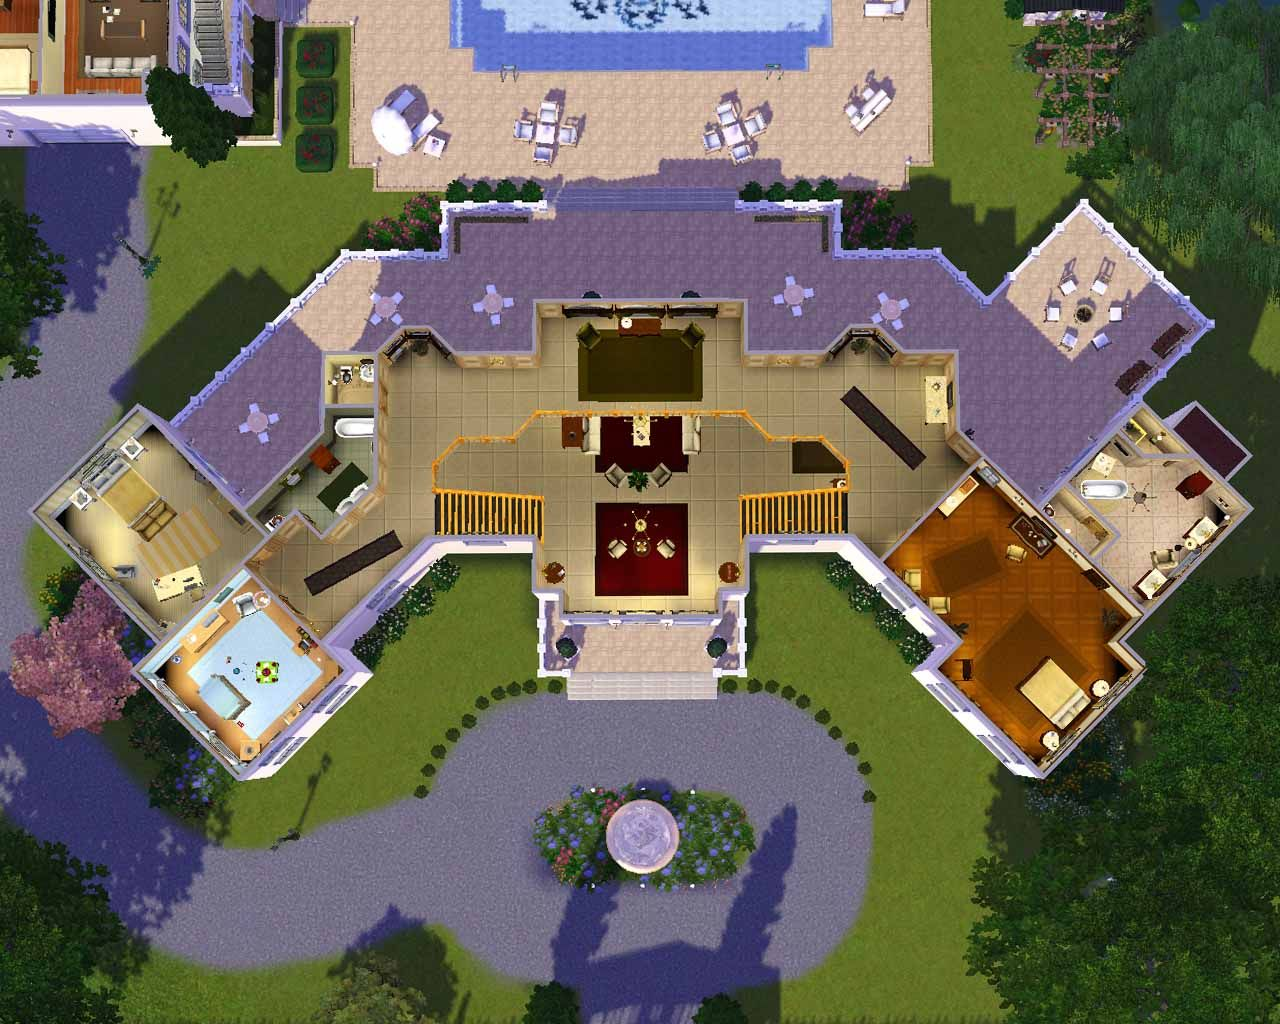 The sims 3 house designs google search idea the sims for Find home blueprints